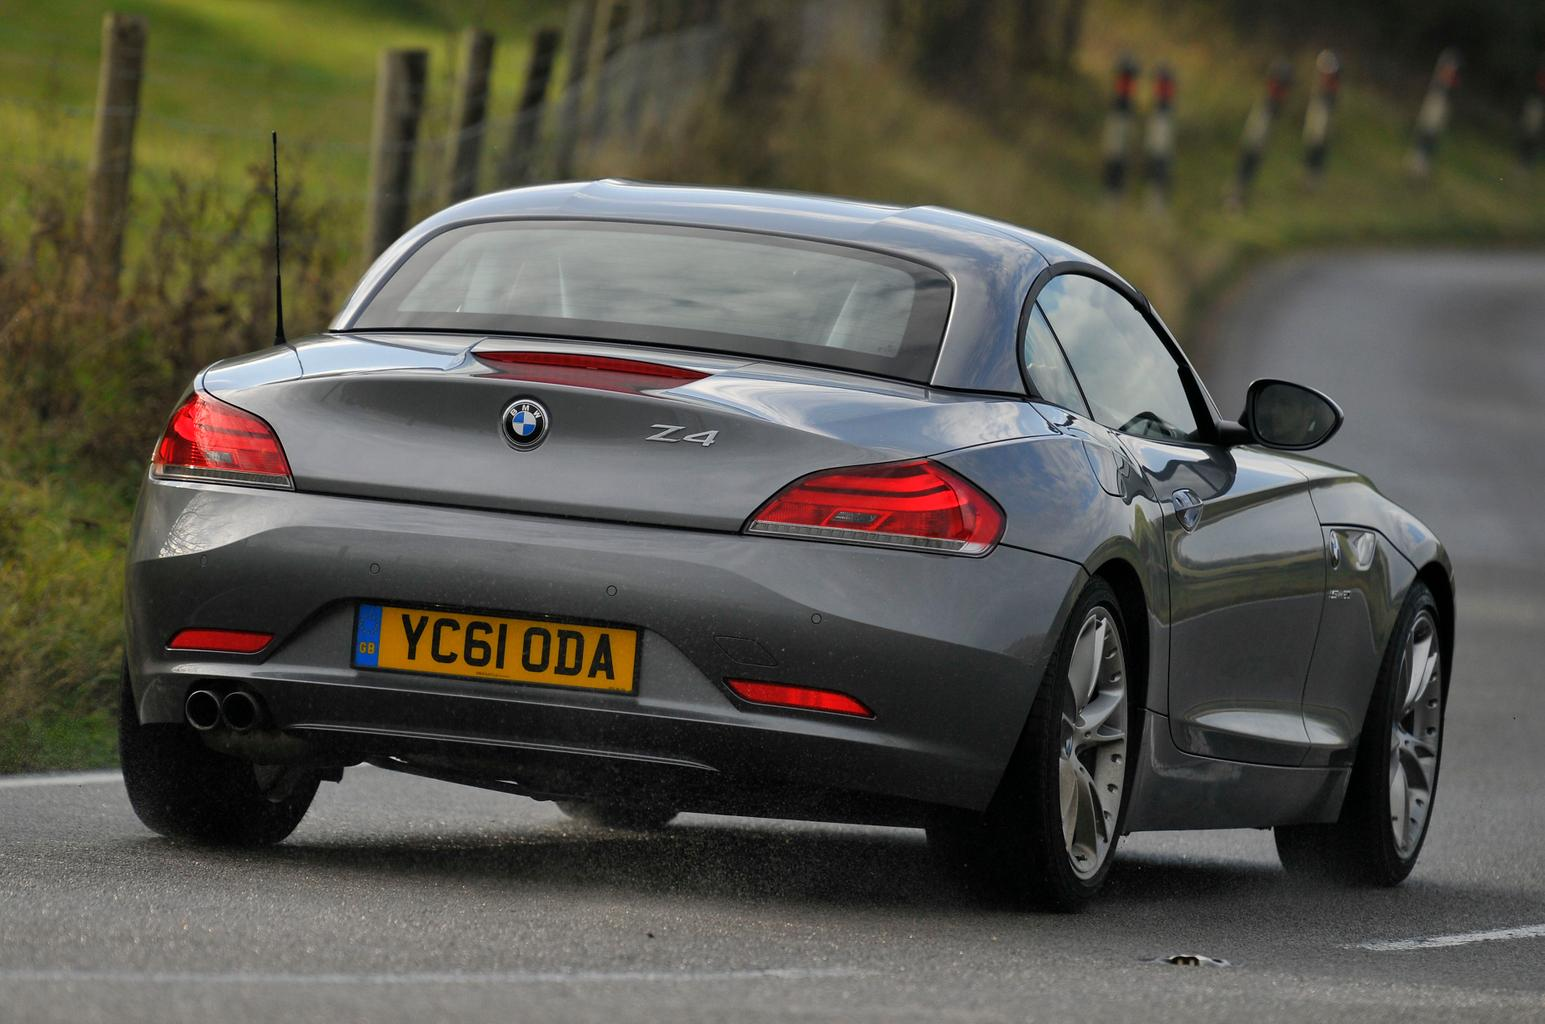 Used test – fun in the sun: Audi TT Roadster vs BMW Z4